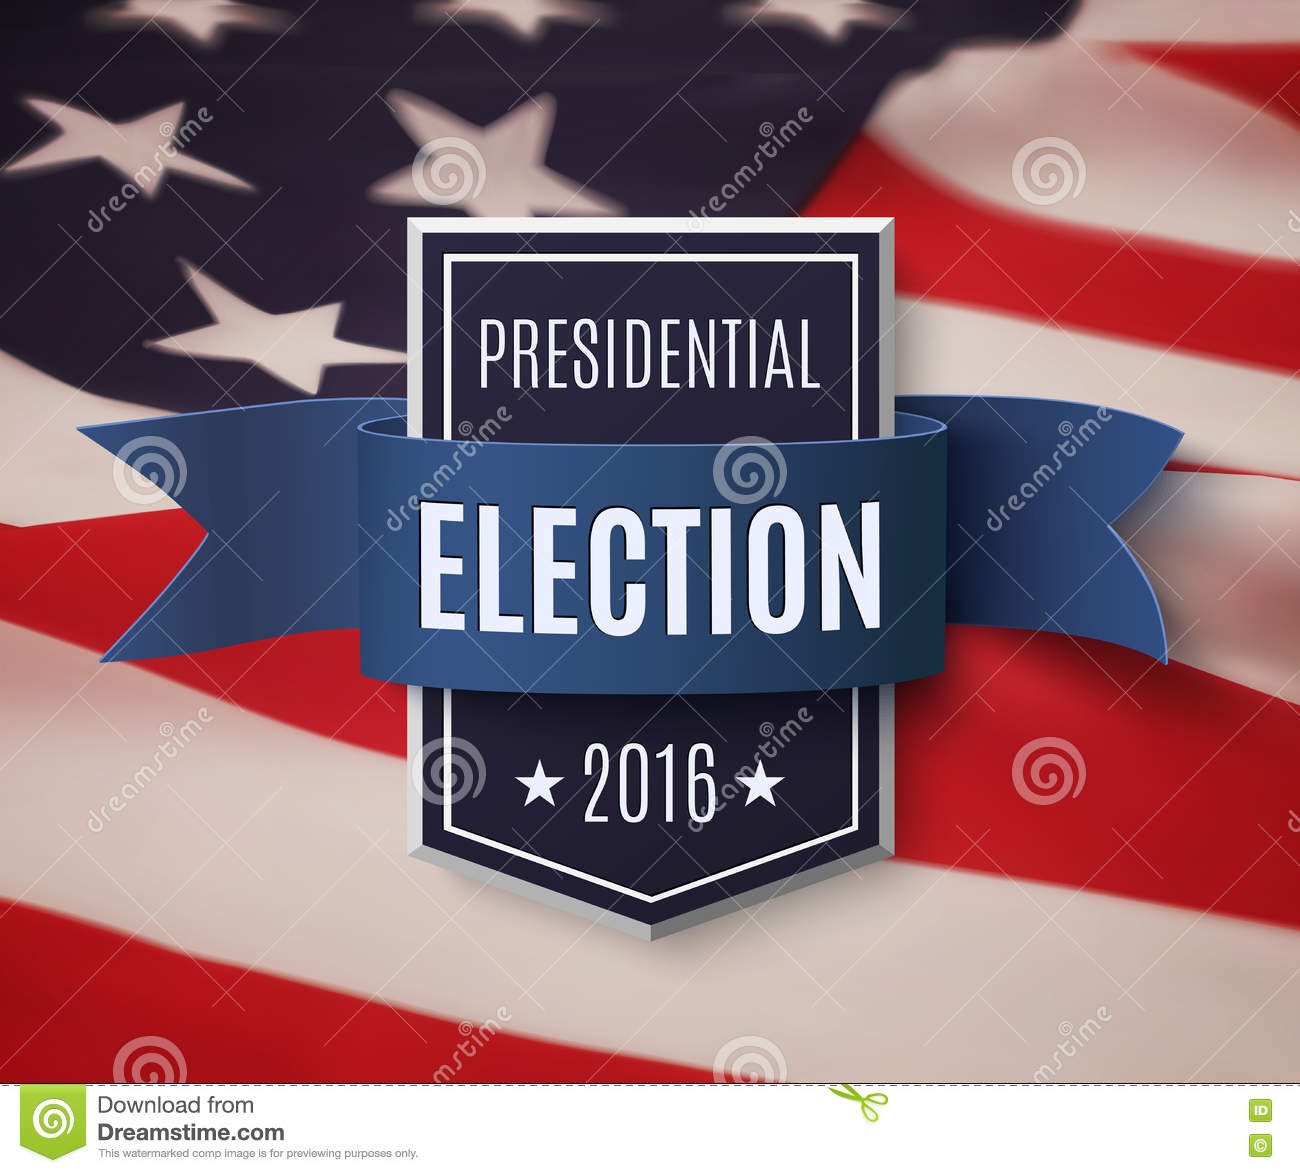 download presidential election 2016 poster template stock vector illustration of elect politics